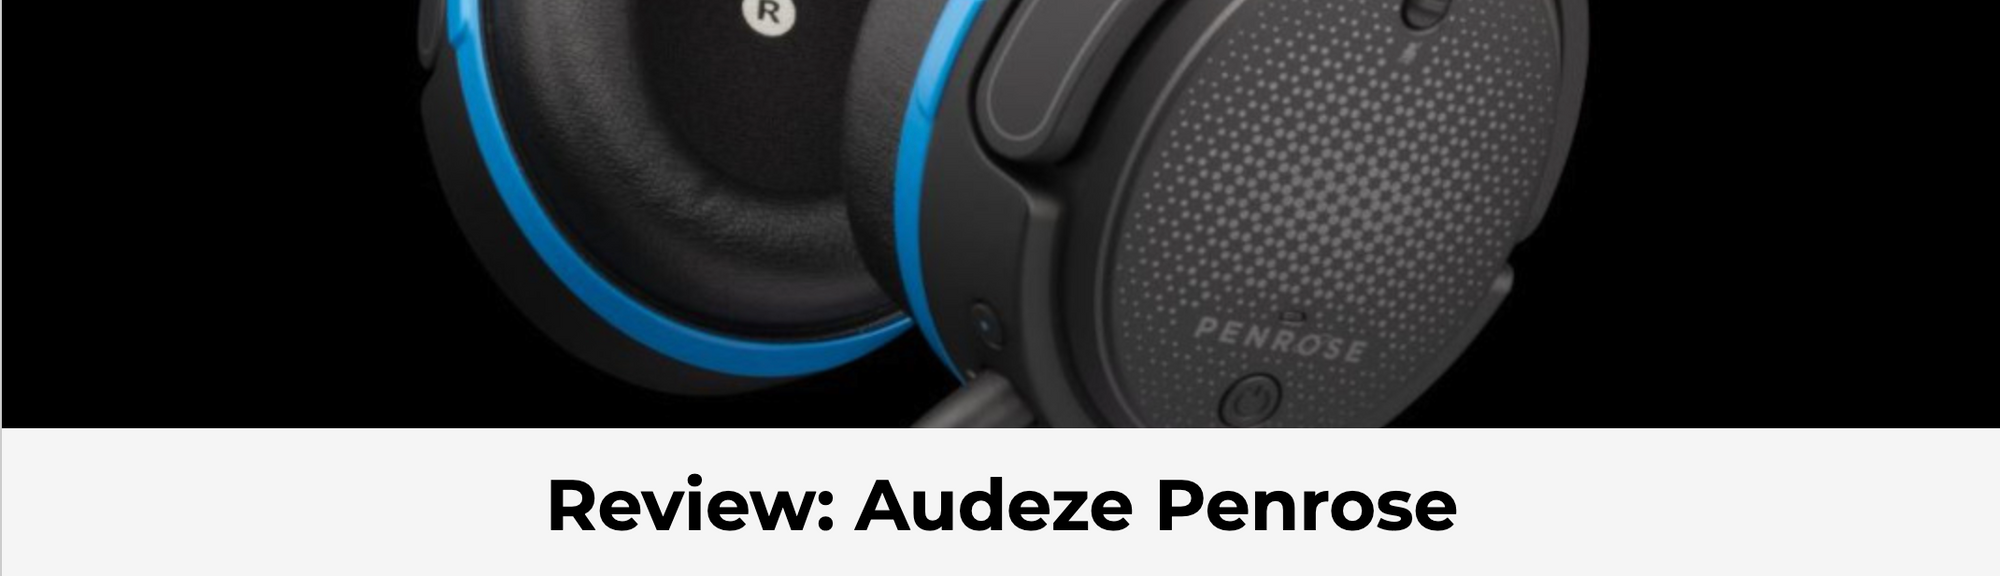 """Penrose is simply one of the best gaming headsets on the market."" Says Hardcore Gamer"